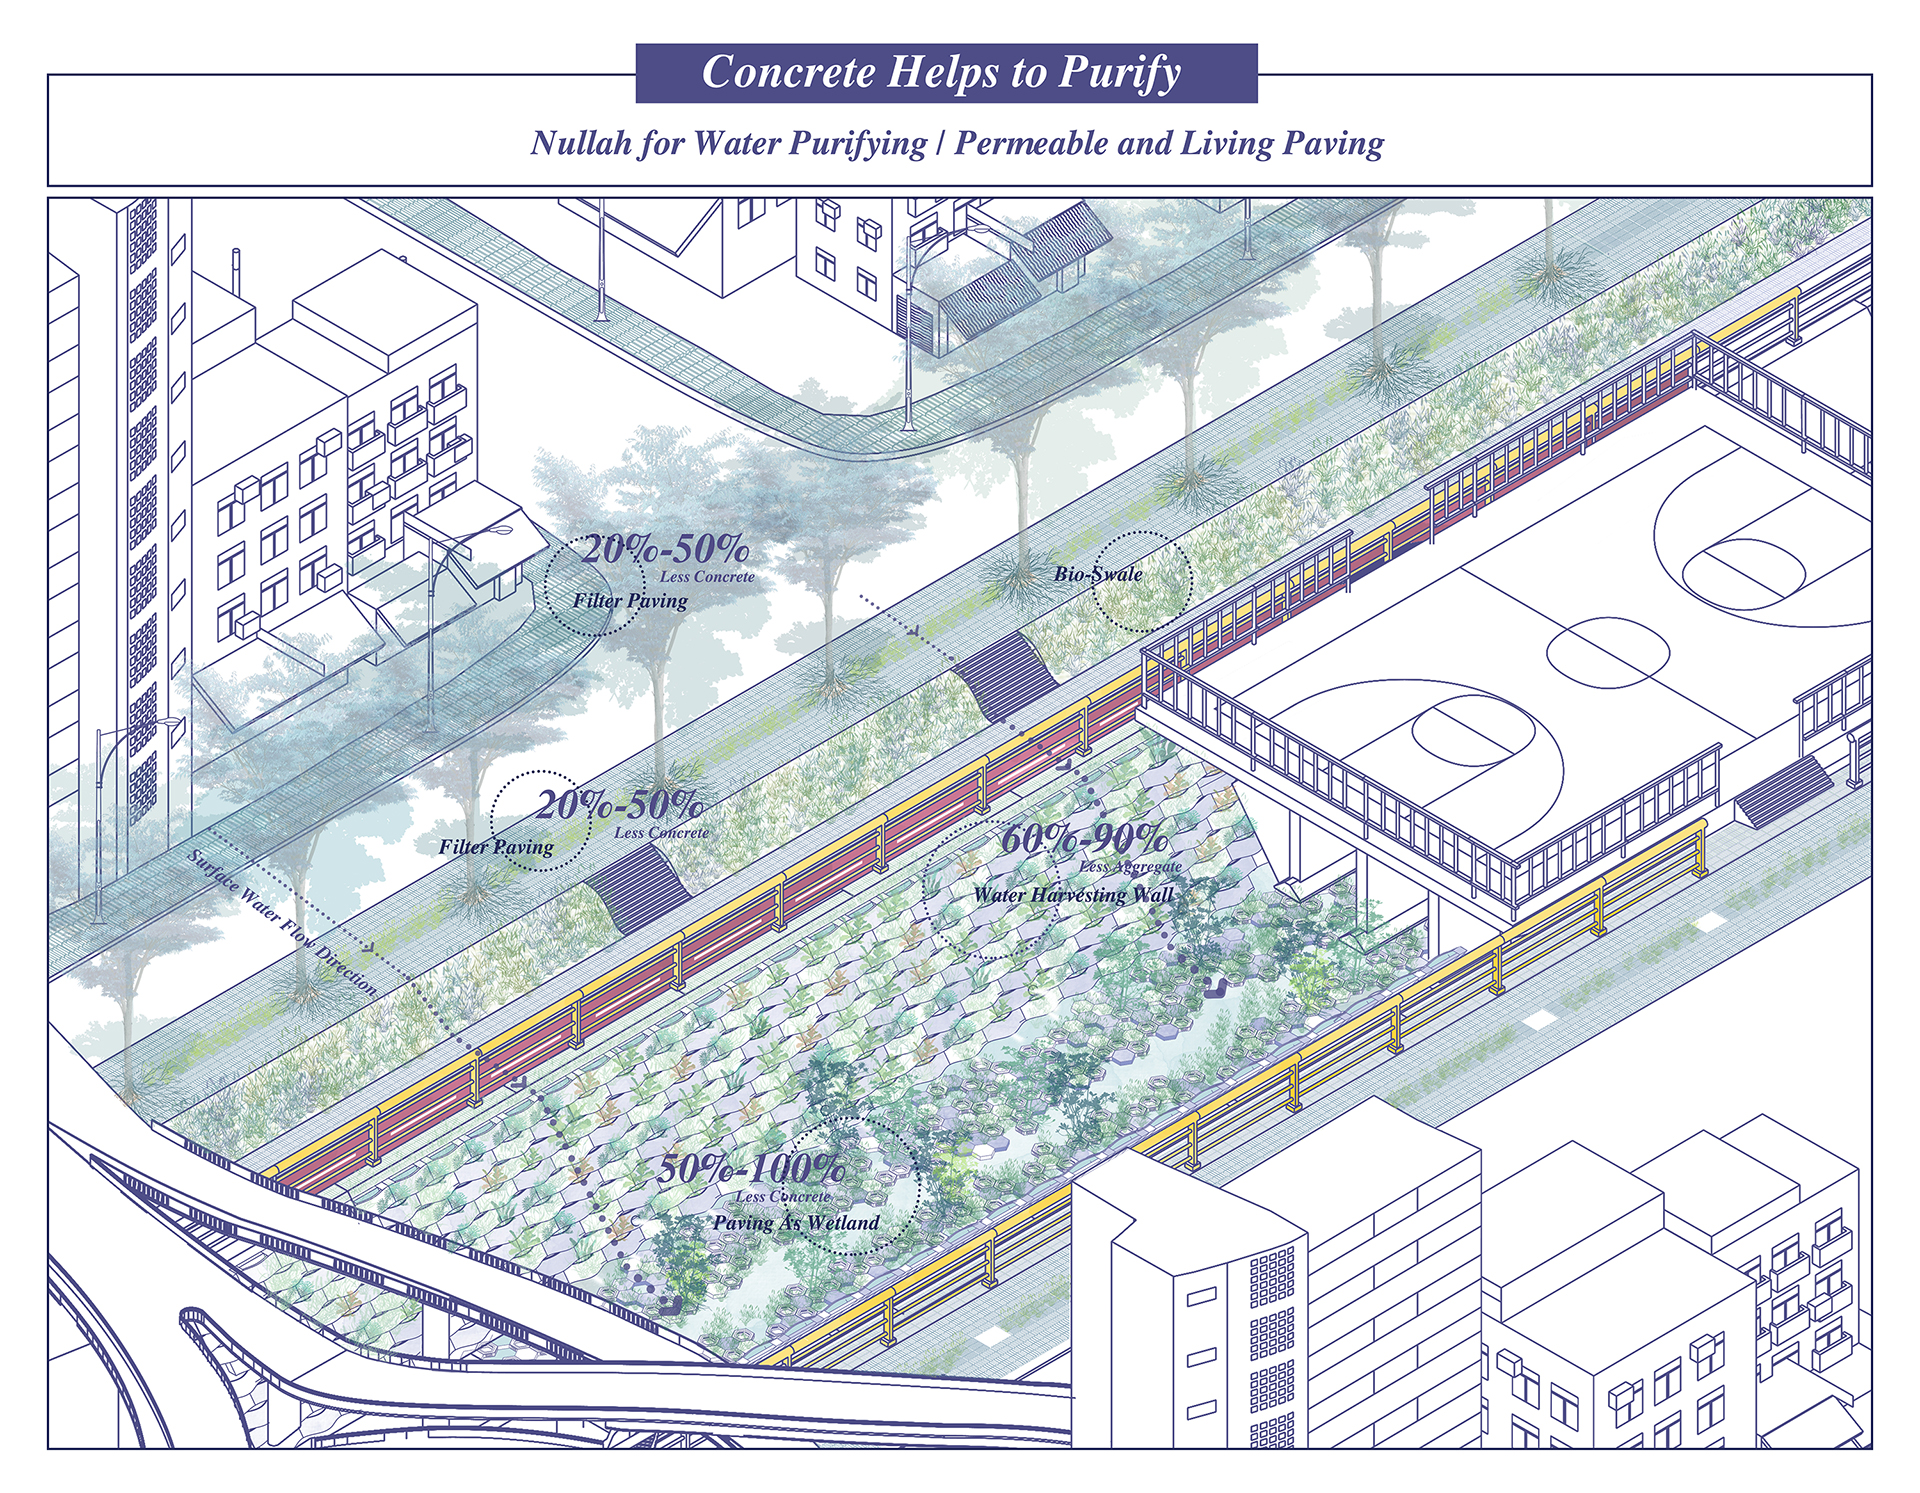 Enlarge Photo: This scenario uses Tai Wai nullah as an example to explore the possible component of concrete. It shows the new landscape formed created by the design prototype and their activated water purification function. By HE Jialei Constance.